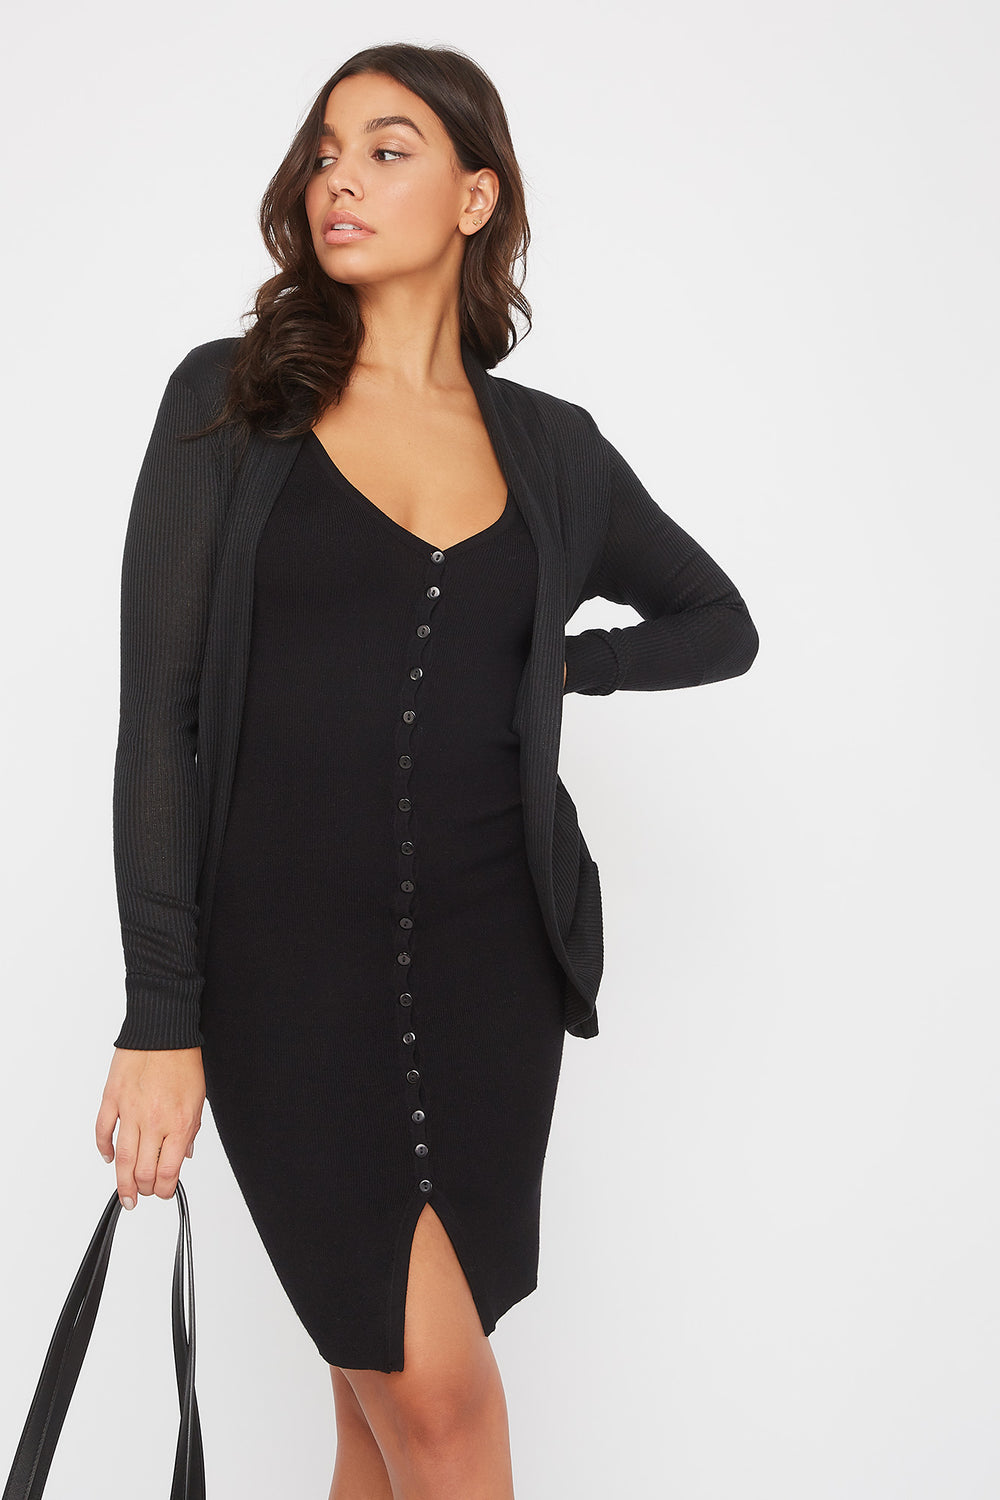 Ribbed Cocoon Cardigan Black